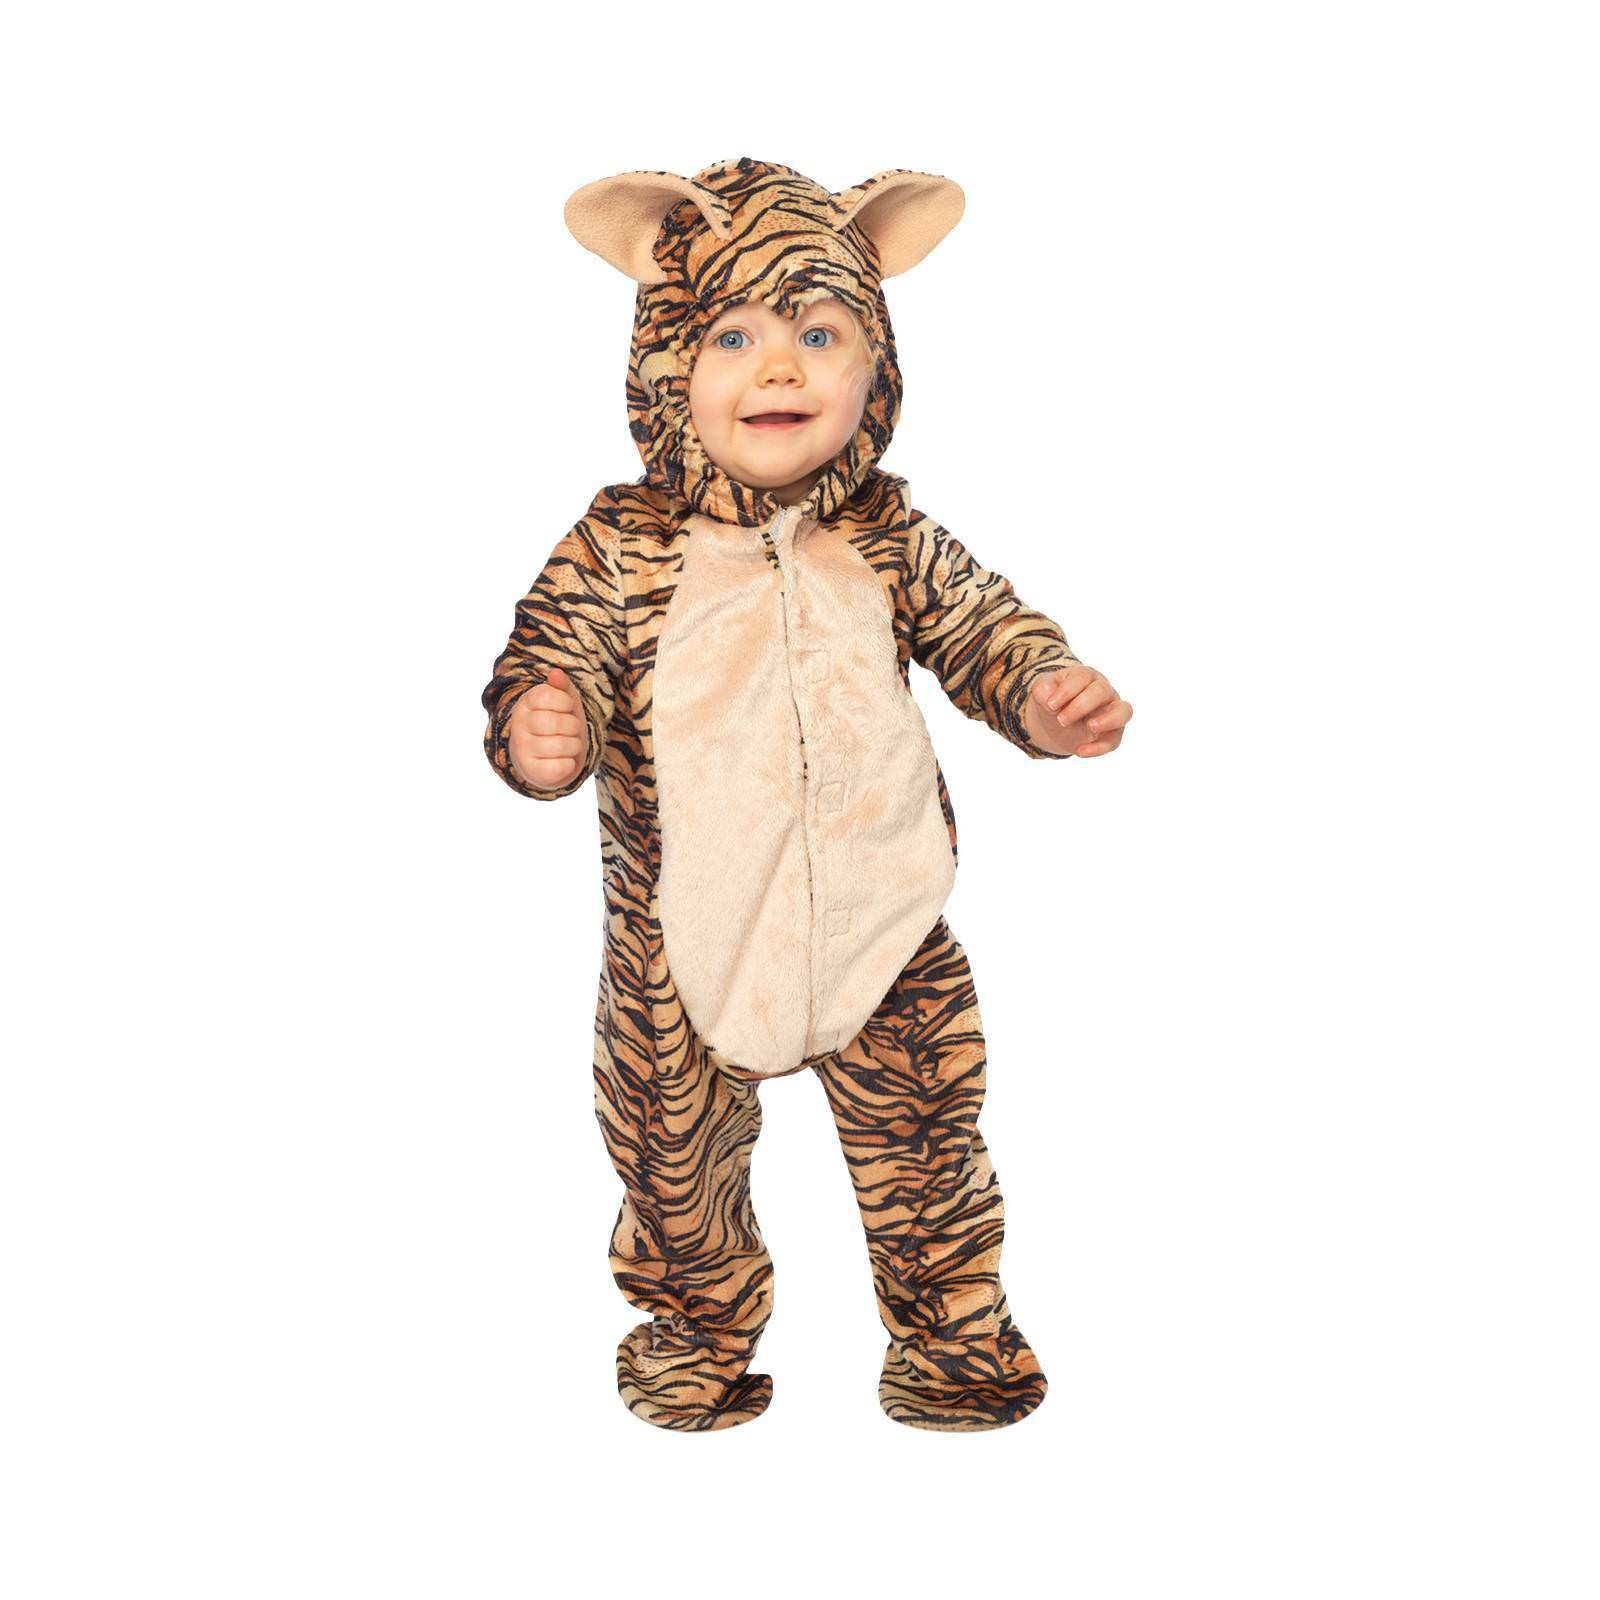 Nip Anne Geddes Baby Costume Daisy Flower Or Tiger 12 18 Mo Costume